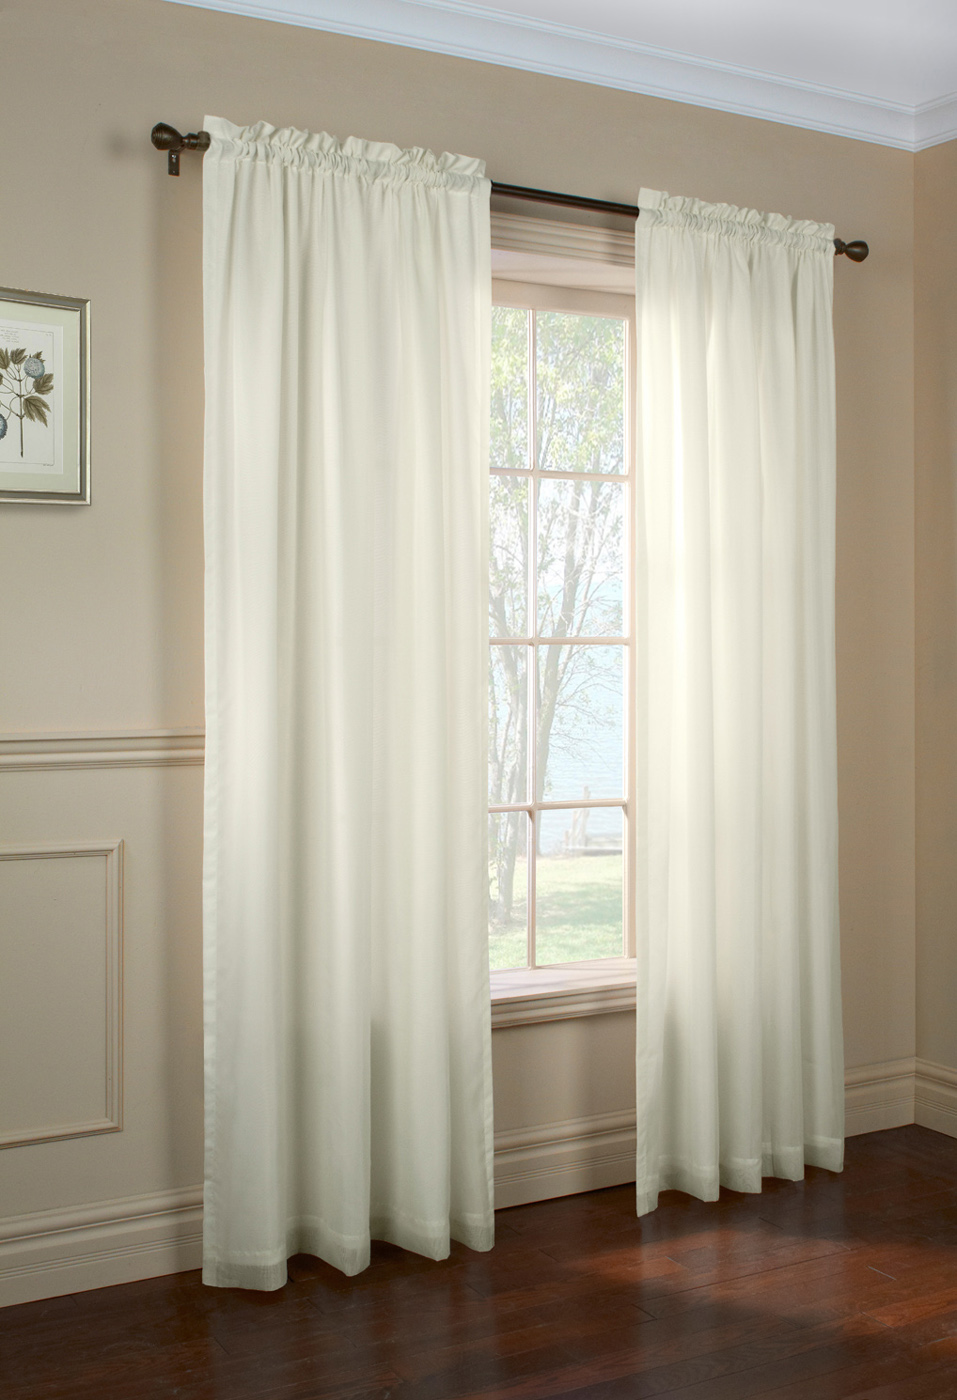 Rhapsody sheer voile curtain panels for Sheer panel curtain ideas